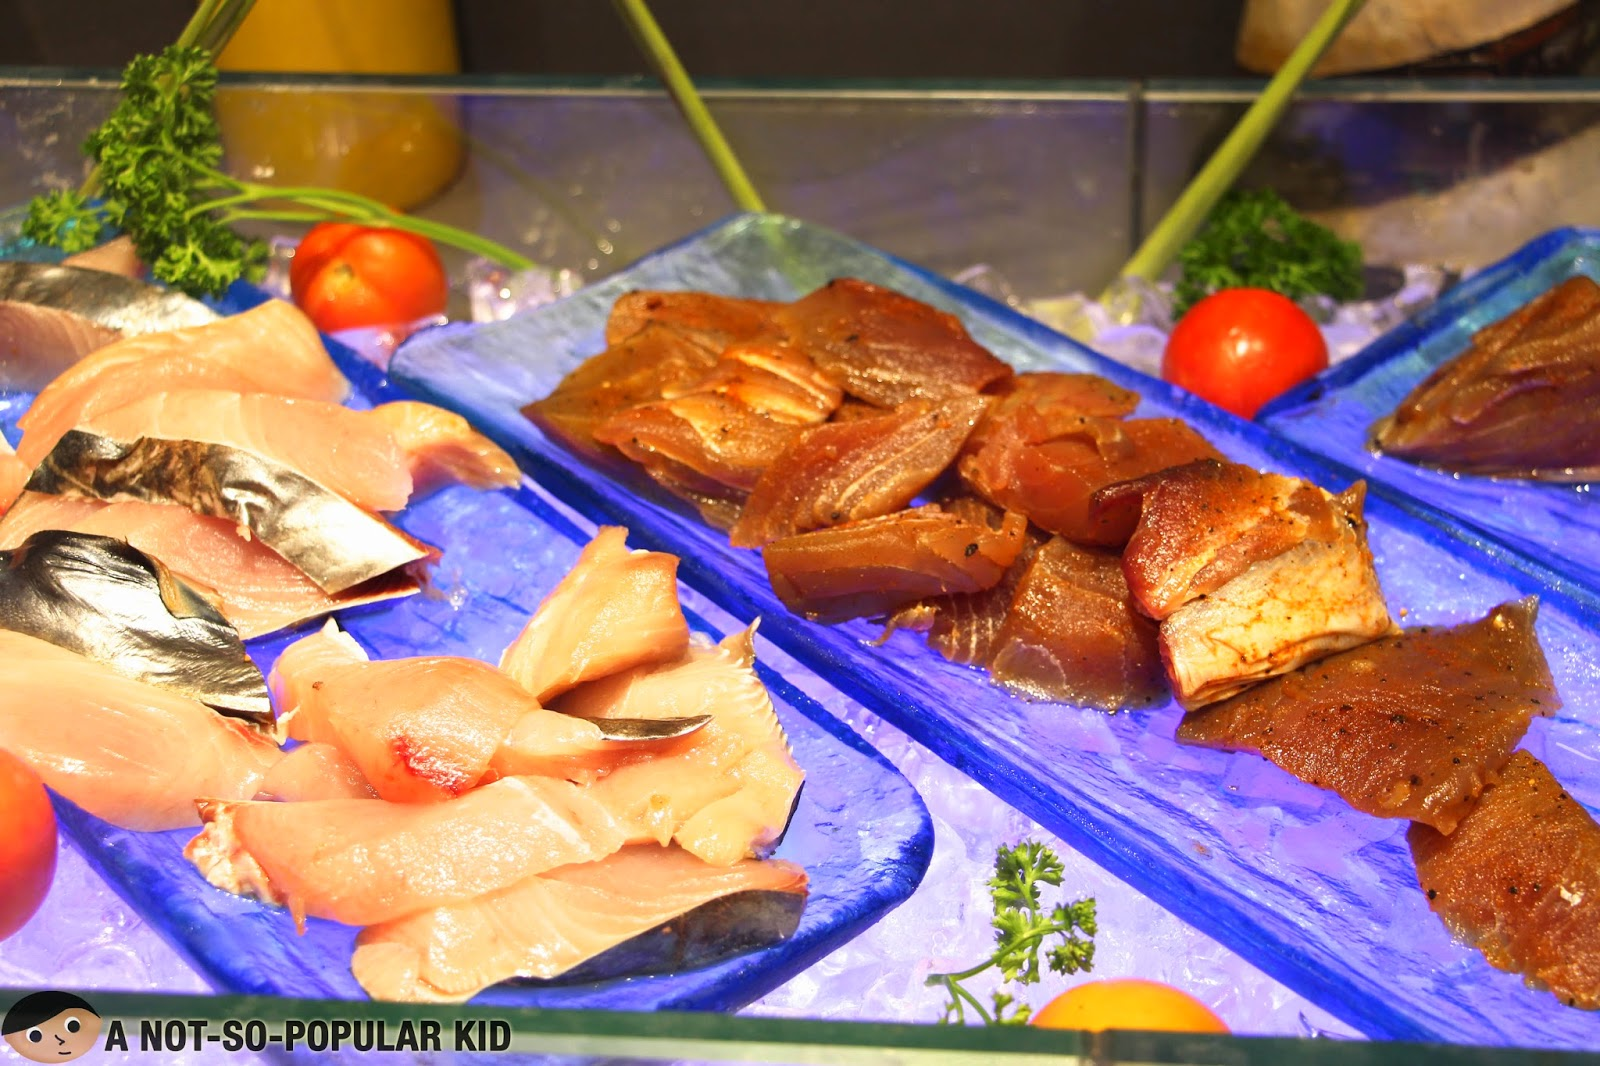 Grillable tuna and more in the seafood area of Vikings